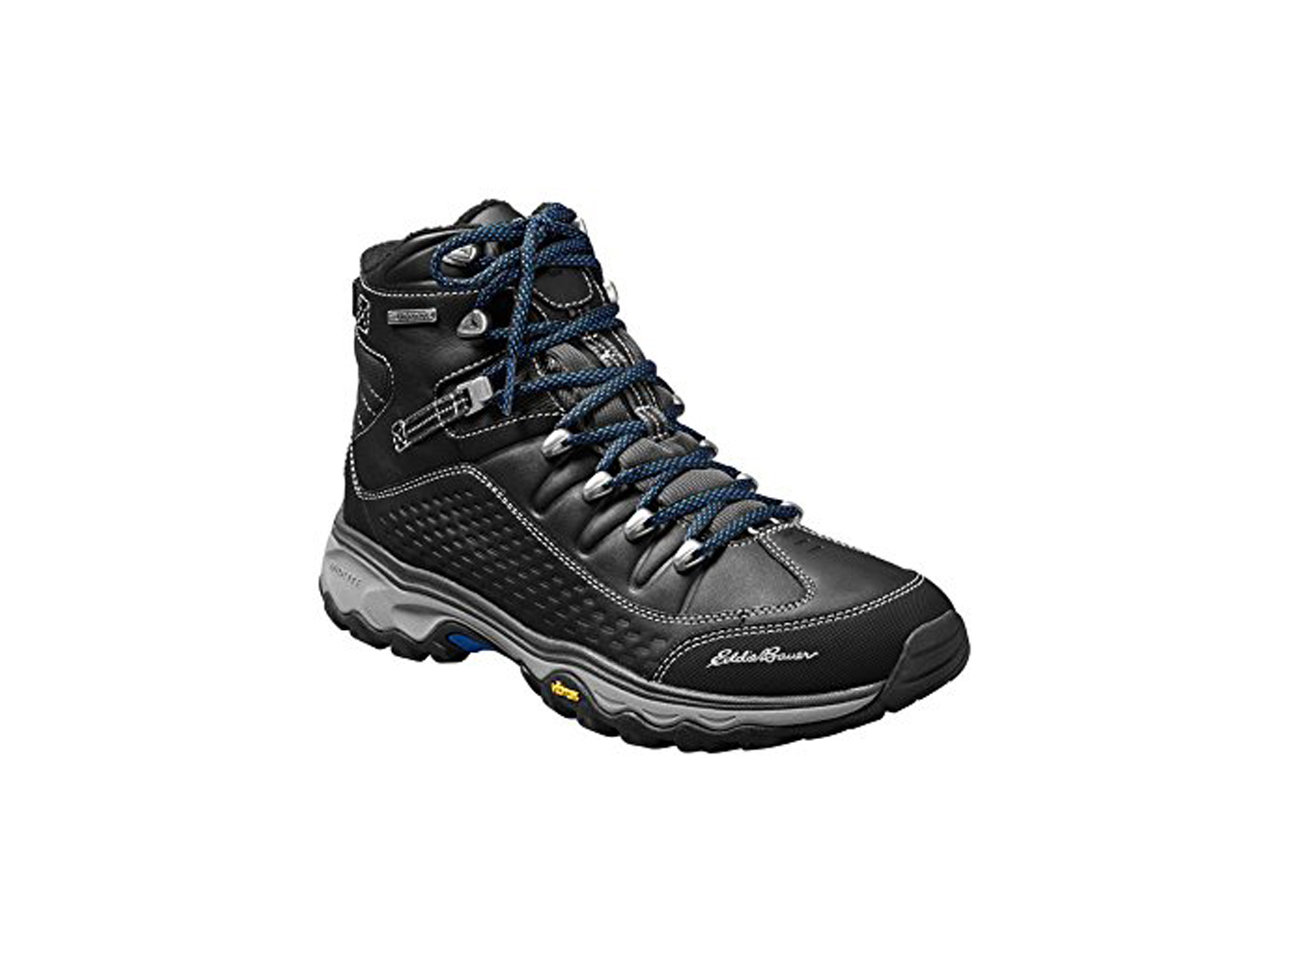 2f479a6cf5c Eddie Bauer Hiking Boots - Best Picture Of Boot Imageco.Org